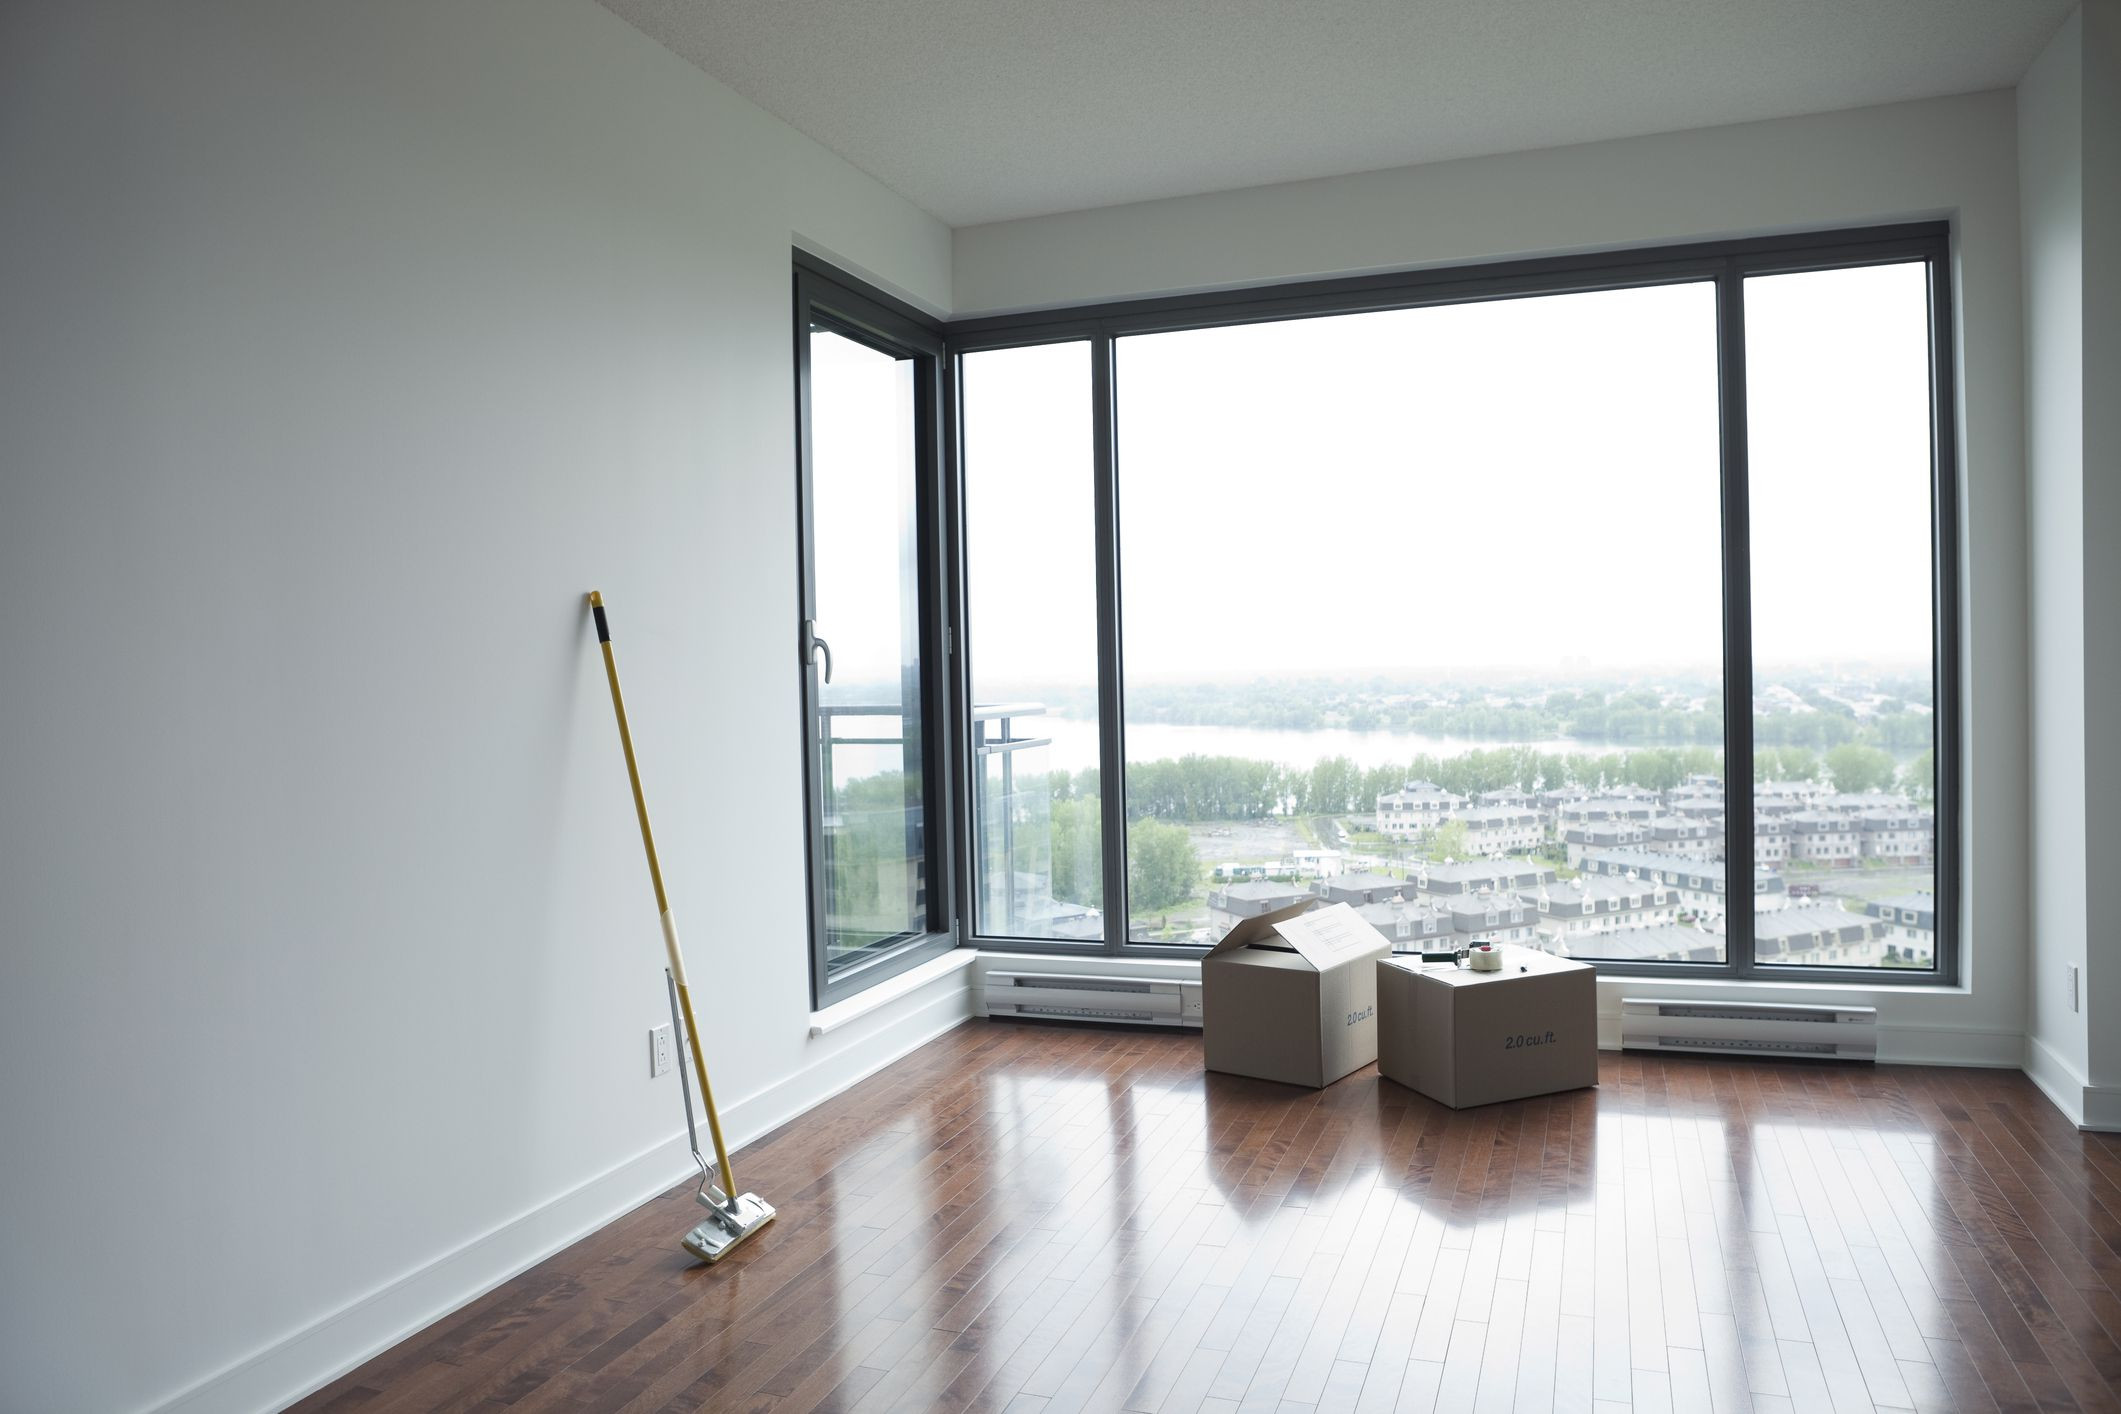 hardwood floor deep cleaning services of the best cleaner for laminate floors inside clean laminate floor gettyimages 183408912 58925fff5f9b5874eeecb034